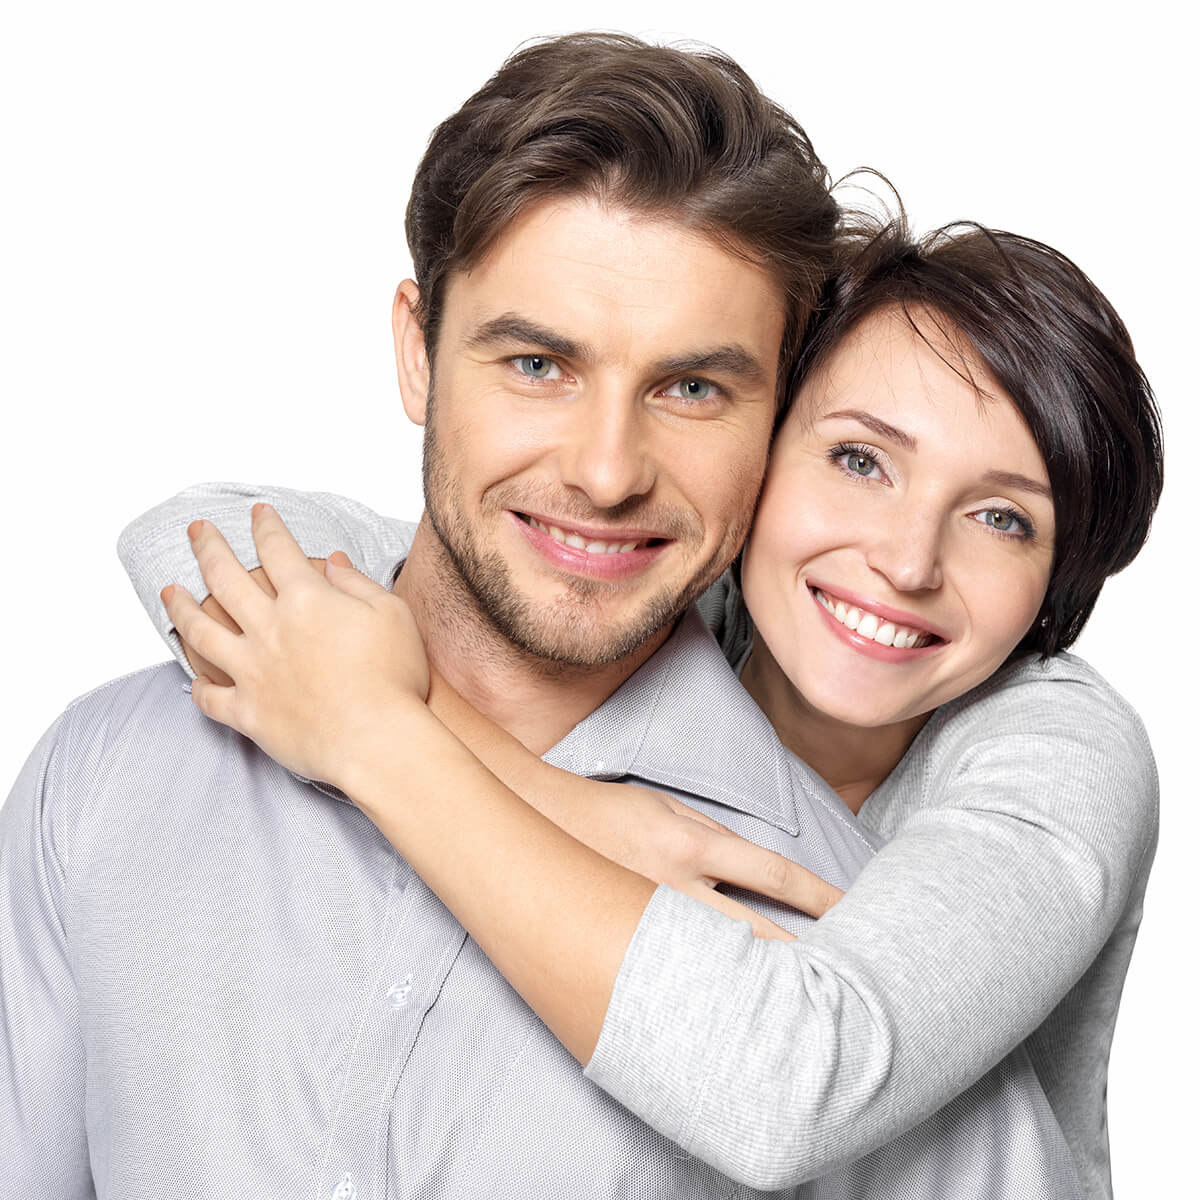 Low T Treatment Options in Frisco TX Area